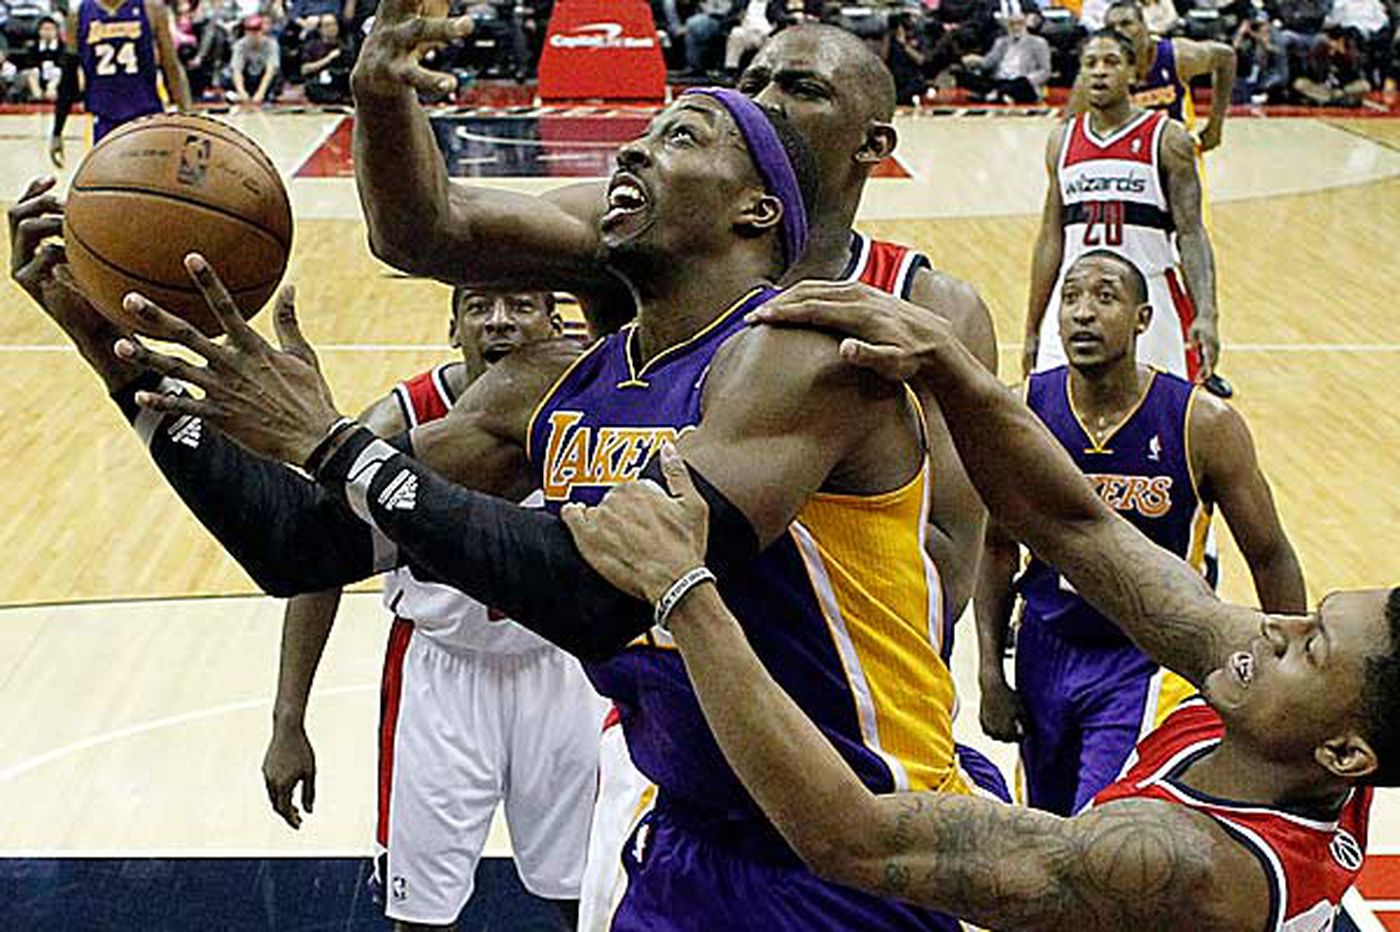 Lakers stumble past Wizards